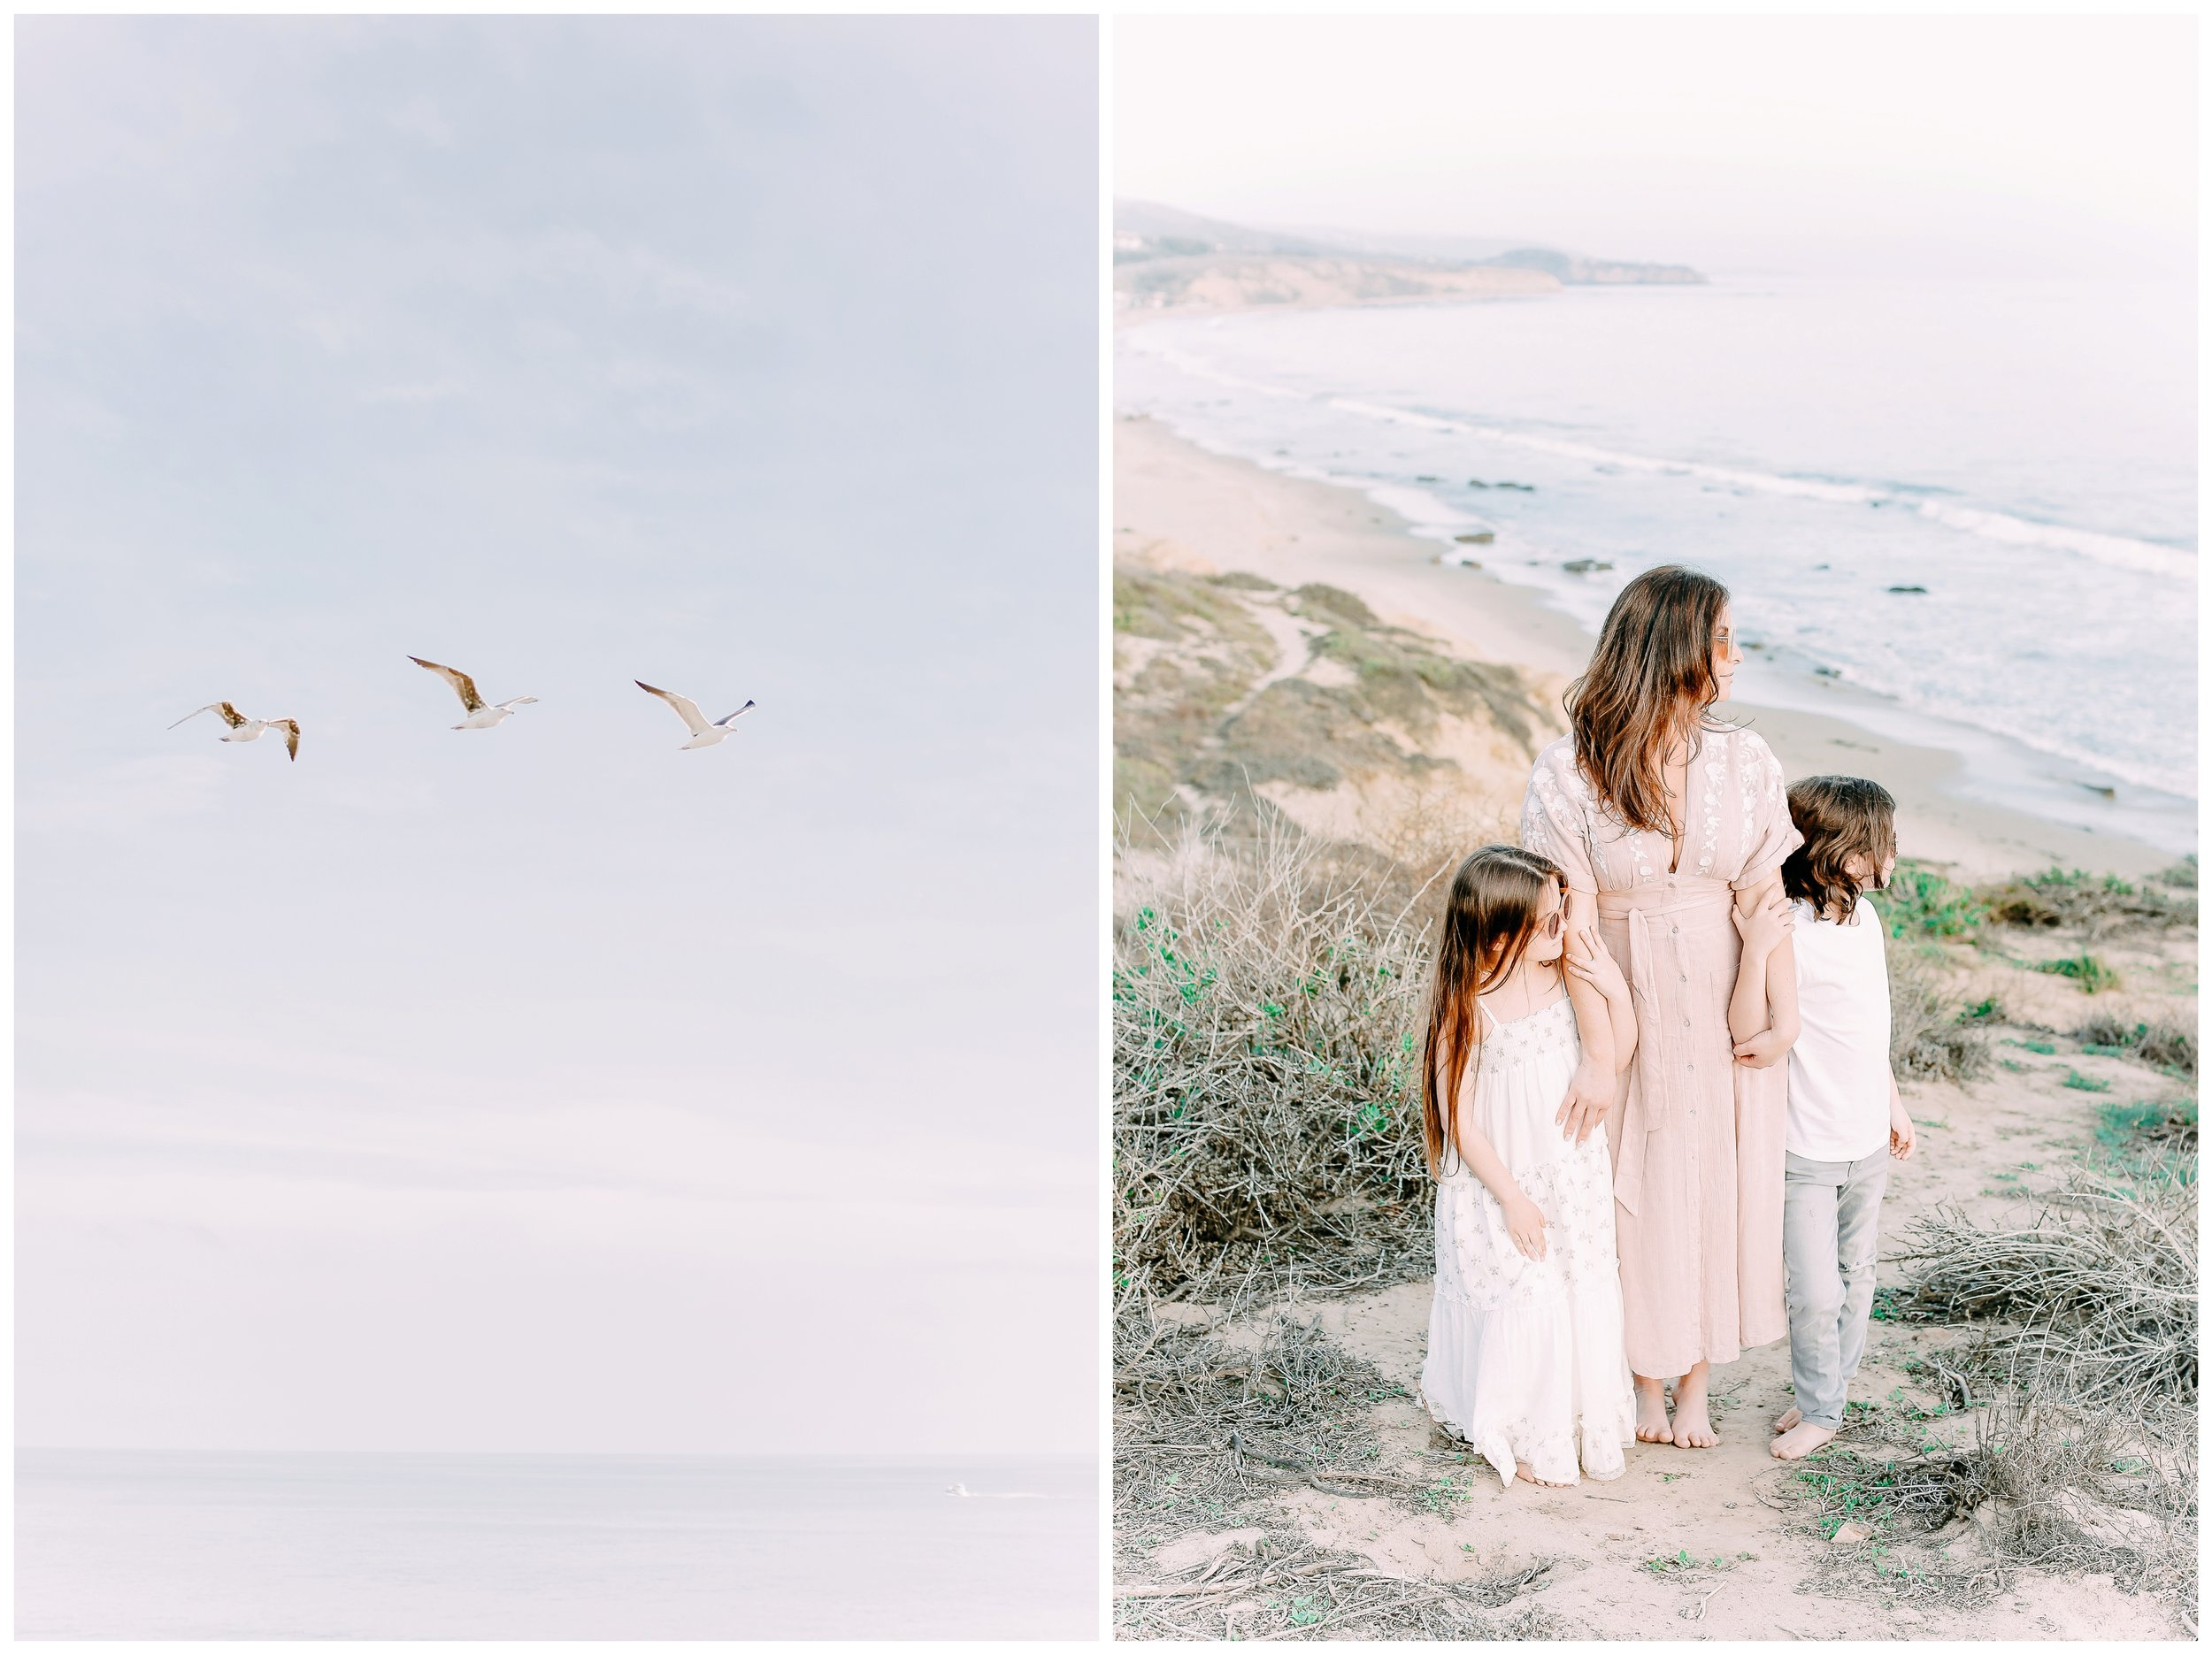 Crystal-Cove-State-Beach-Motherhood- Session-Crystal-Cove-Newport-Beach-Family-Photographer-Crystal-Cove-Minnow-Swim-Cori-Kleckner-Photography-Orange-County-Vacation-Family-Photos-Session-_0847.jpg